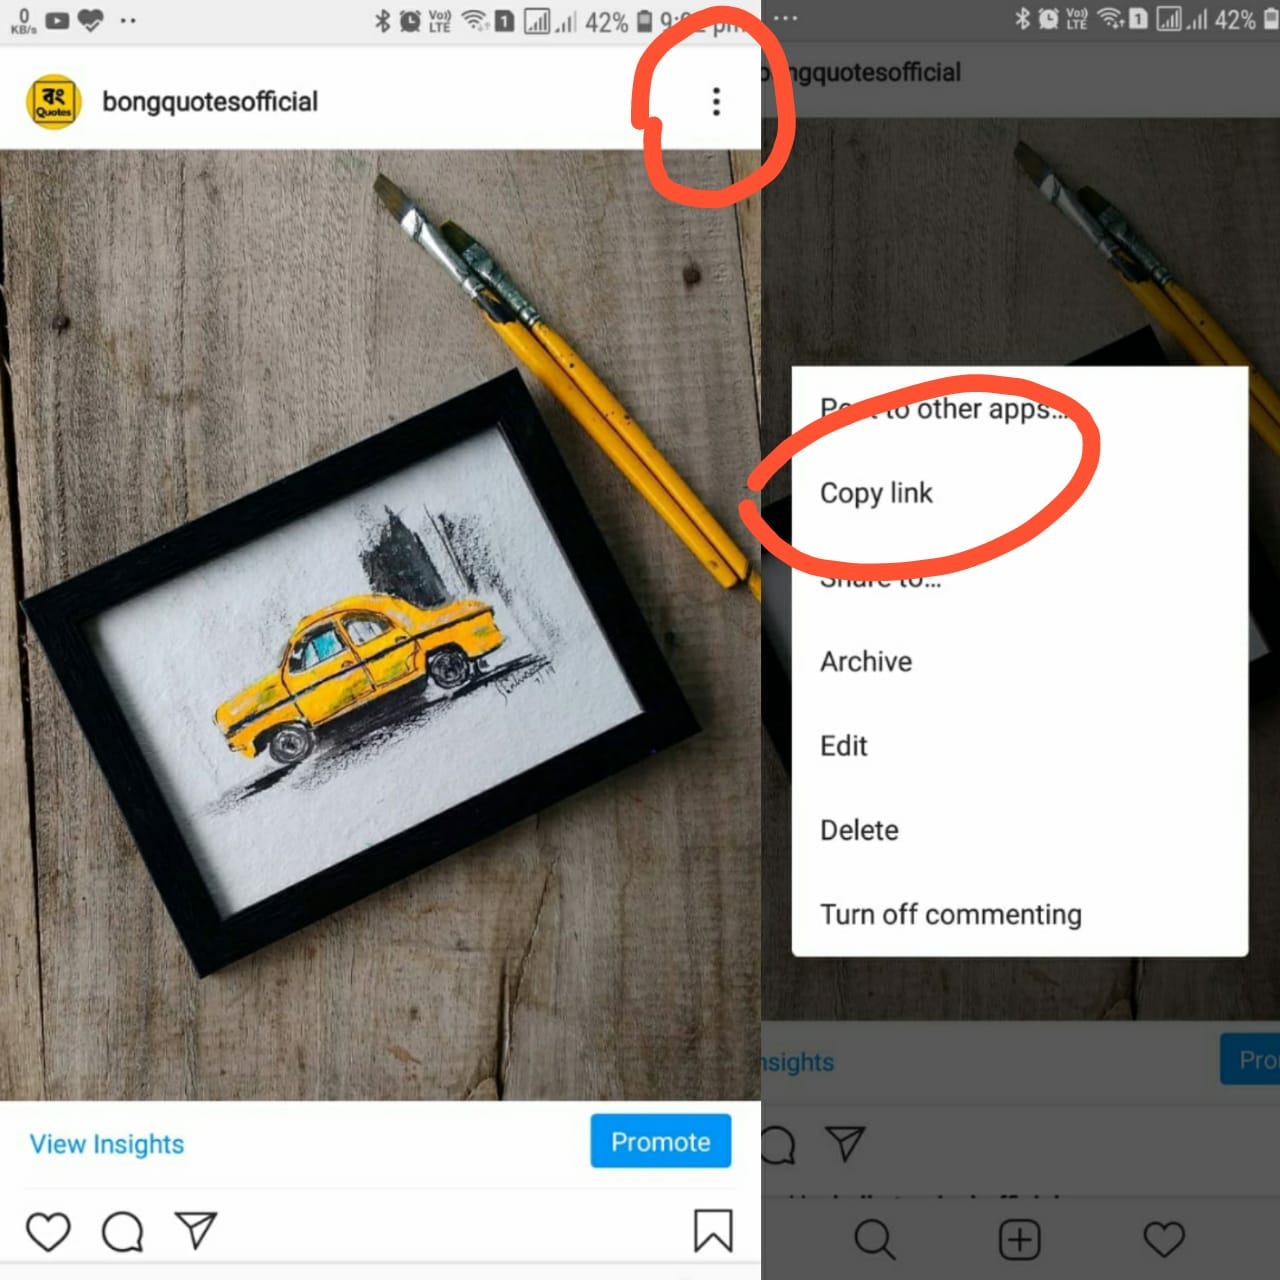 instagram-photo-download-process-explained-in-bangla-bongquotes